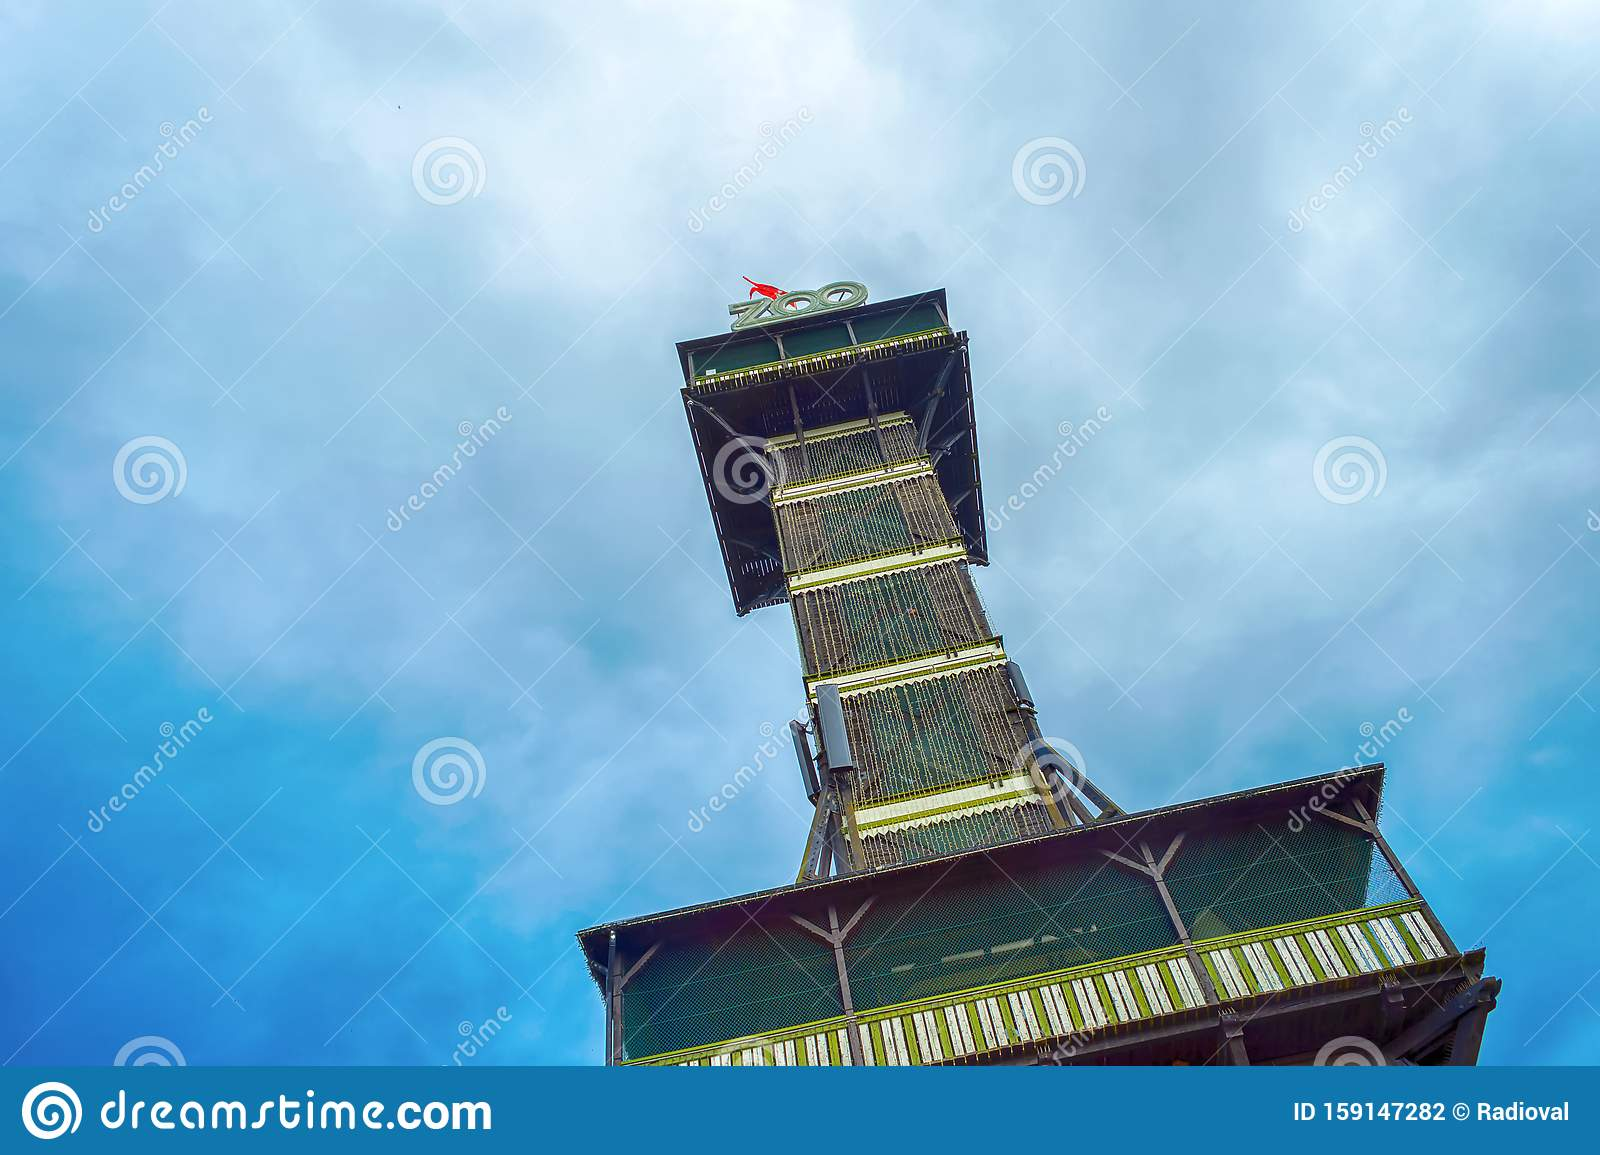 Copenhagen Denmark July 30 2019 The Observational Tower Of The Zoo In Copenhagen Bottom View Stock Photo Image Of Animal View 159147282